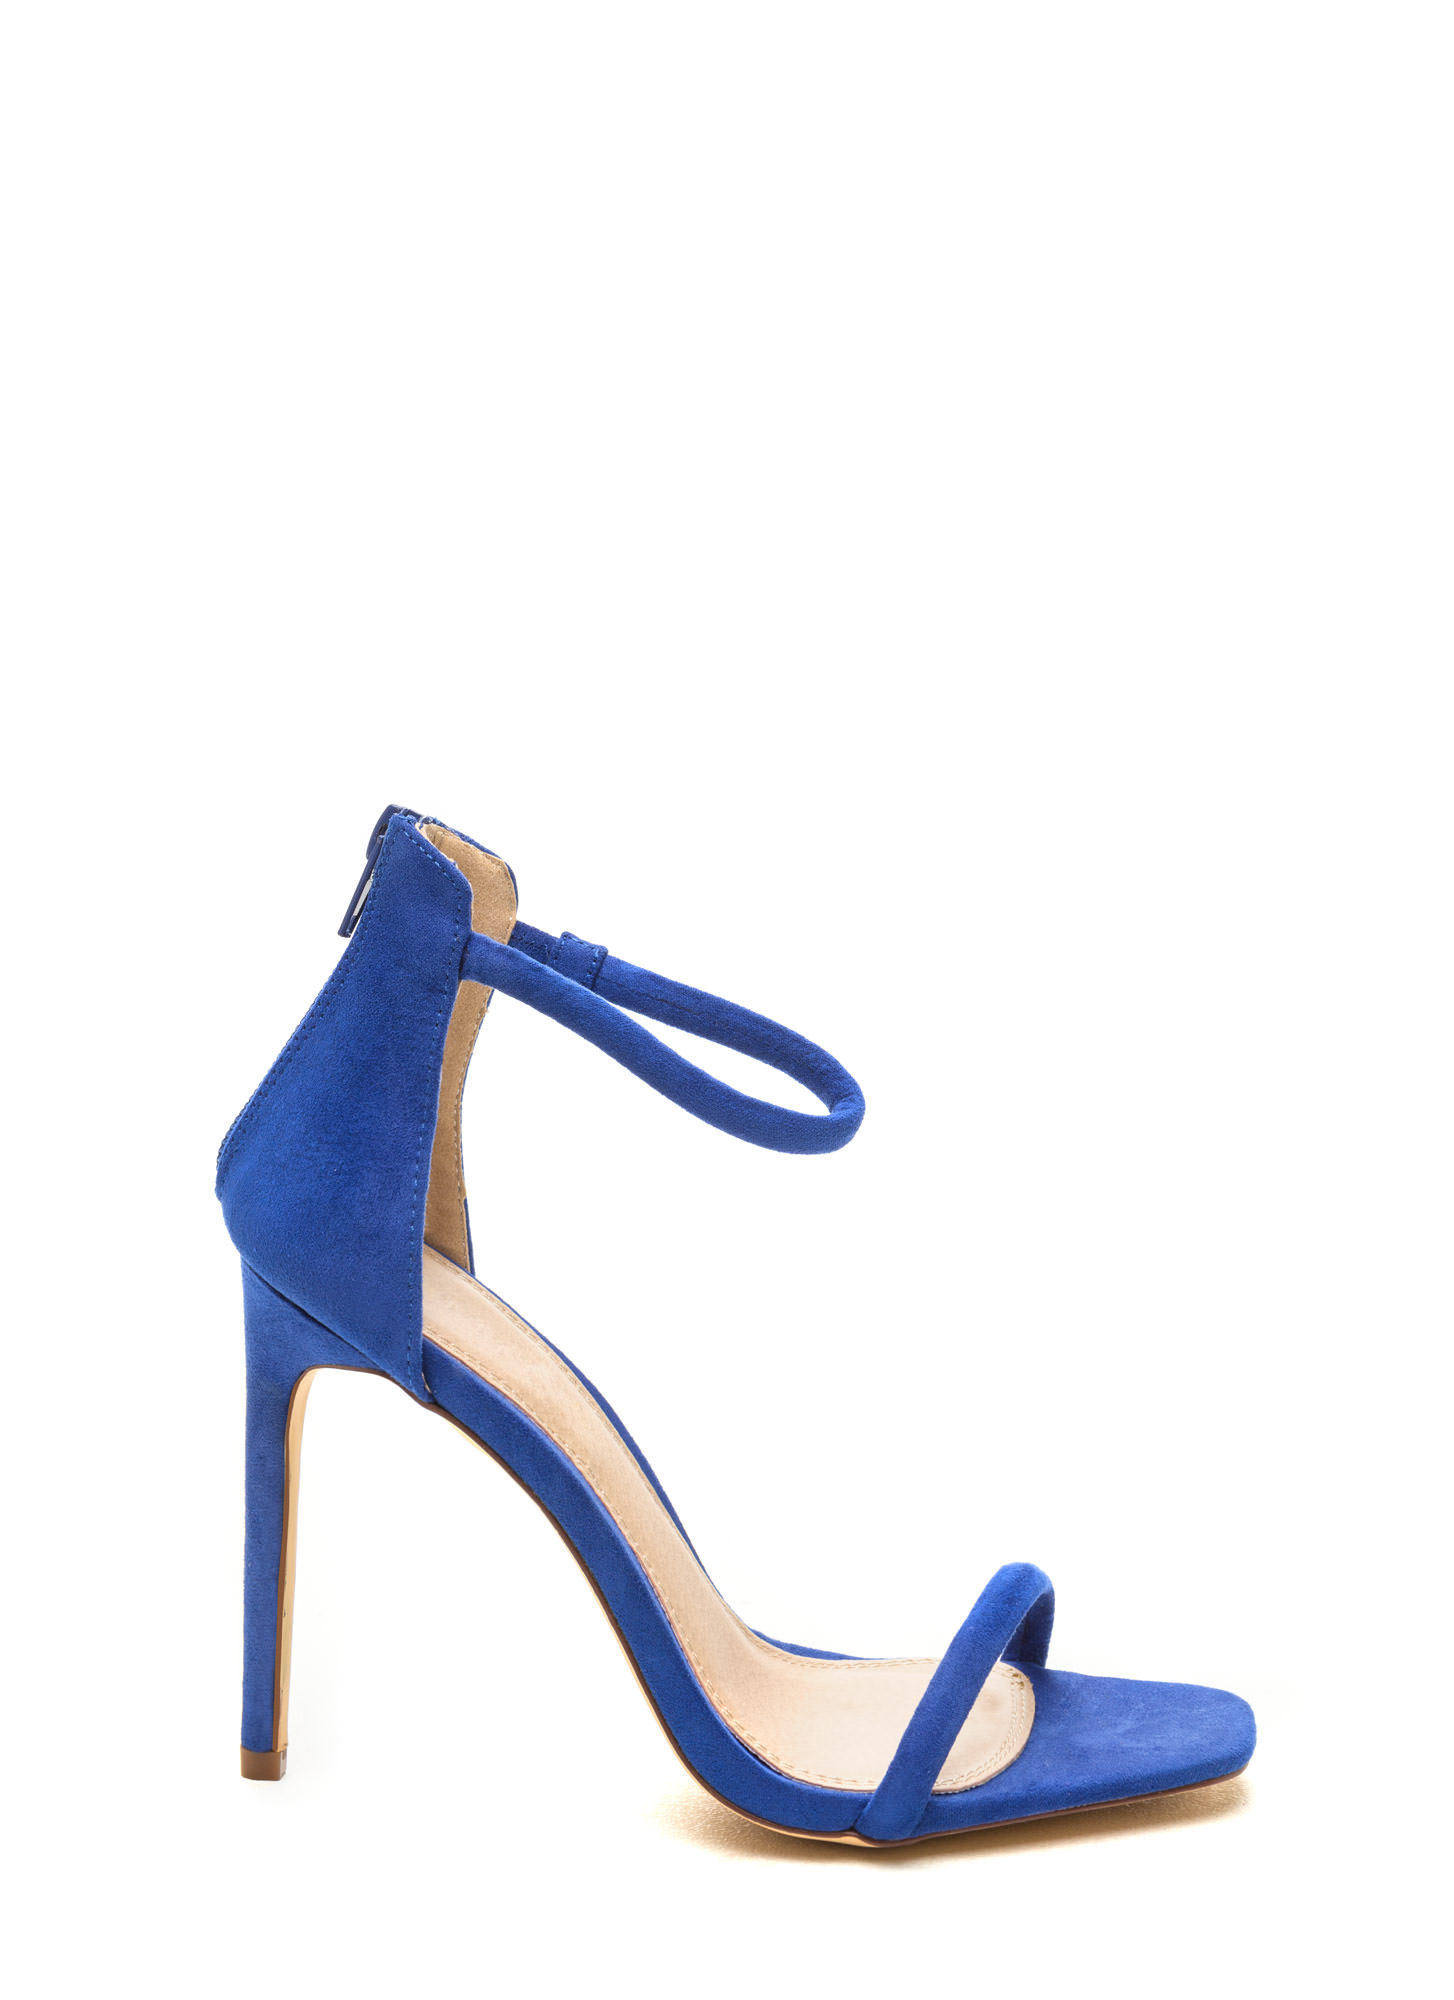 Royal Blue Ankle Strap Heels | Tsaa Heel